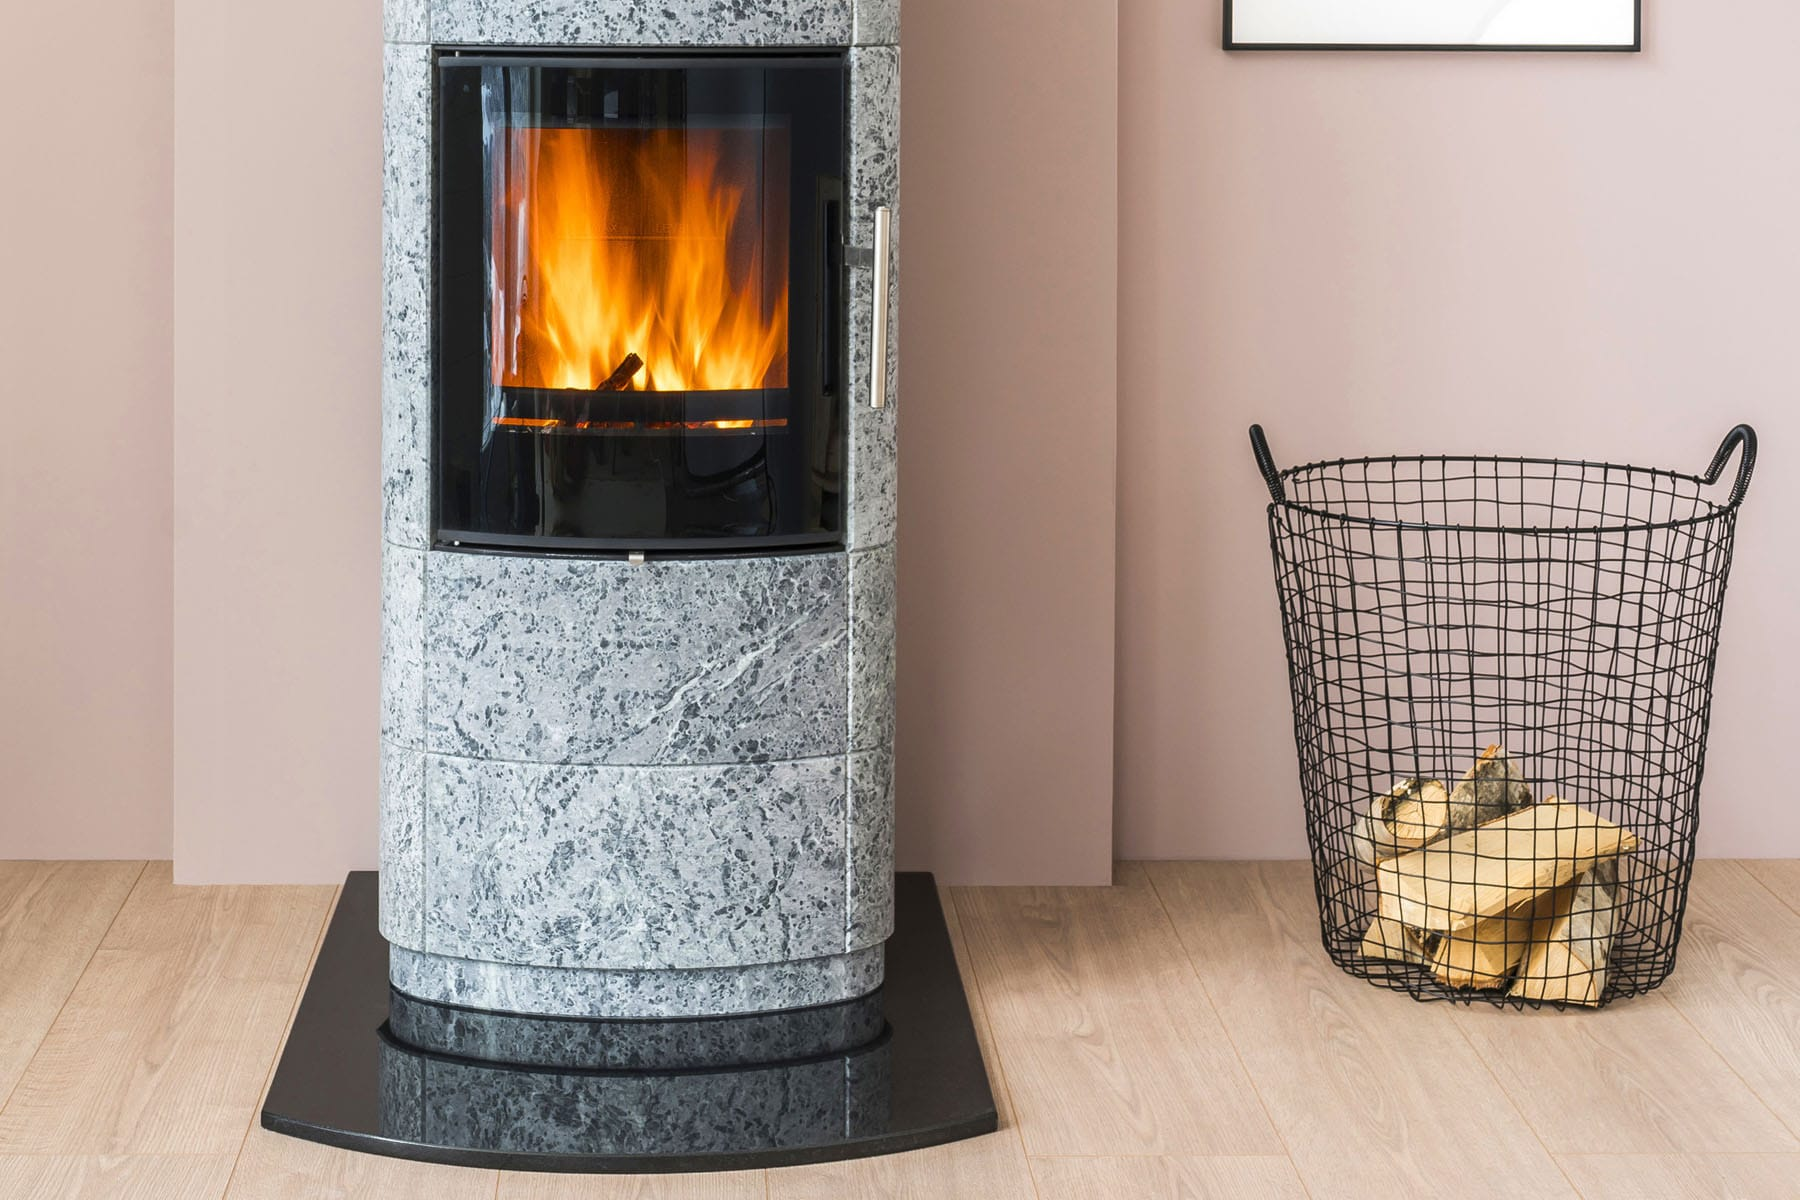 The baseplates are designed according to the shape and placement of the stove. We can supply suitably shaped baseplates for stoves placed in a corner and in front of a straight wall. In most models, the baseplates extend all the way to the back wall and protrude on the sides in order to create a stylish overall impression.